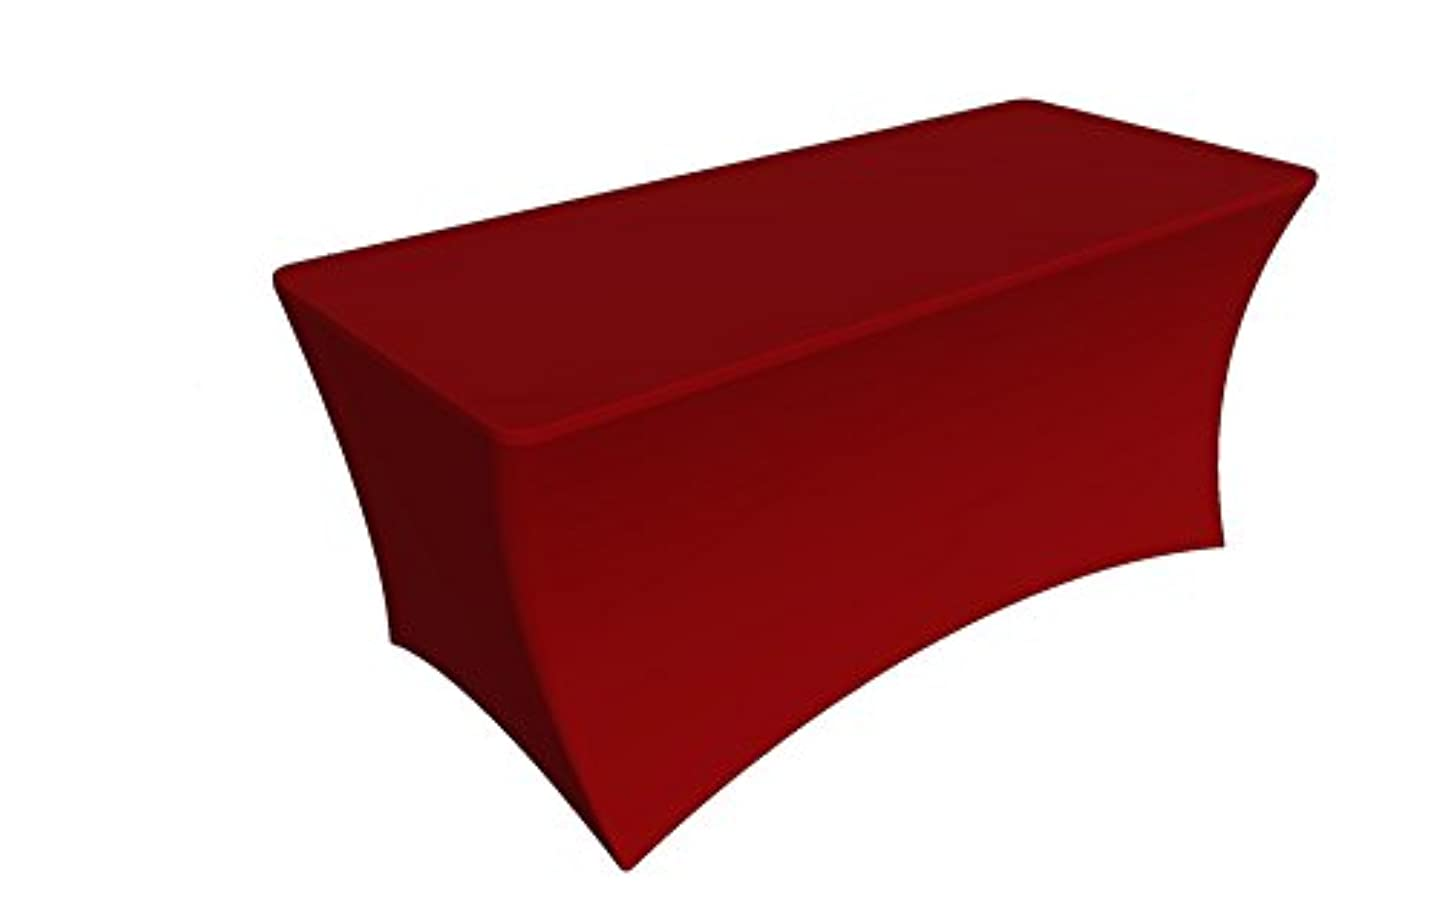 SY66 Tablecloth Cover, 6 ft white,Table Cloth Skirts, Rectangular, Polyester/Spandex, Elastic, Stretchable Linen, Stain & Wrinkle Proof, for Folding Tables, Wedding, DJ, Events (Red)